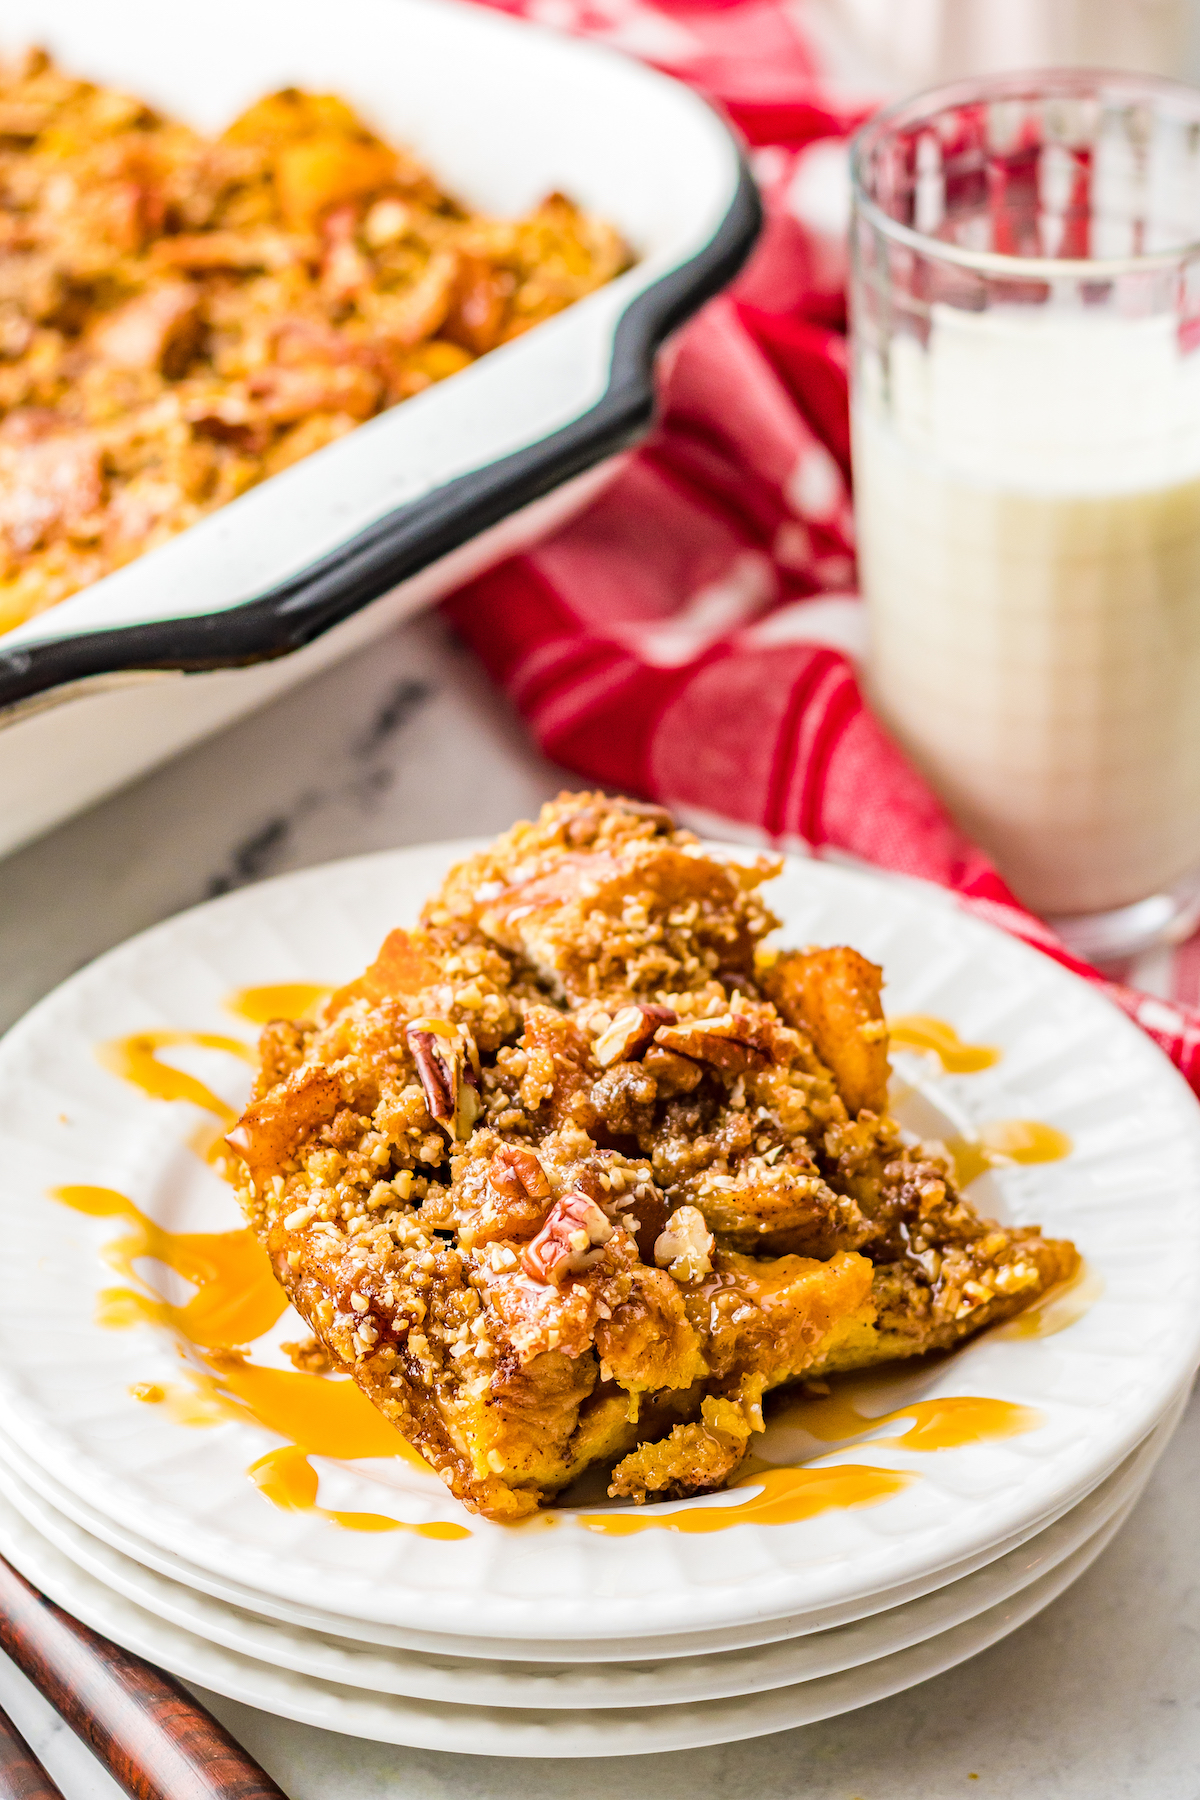 French toast casserole with caramel sauce.